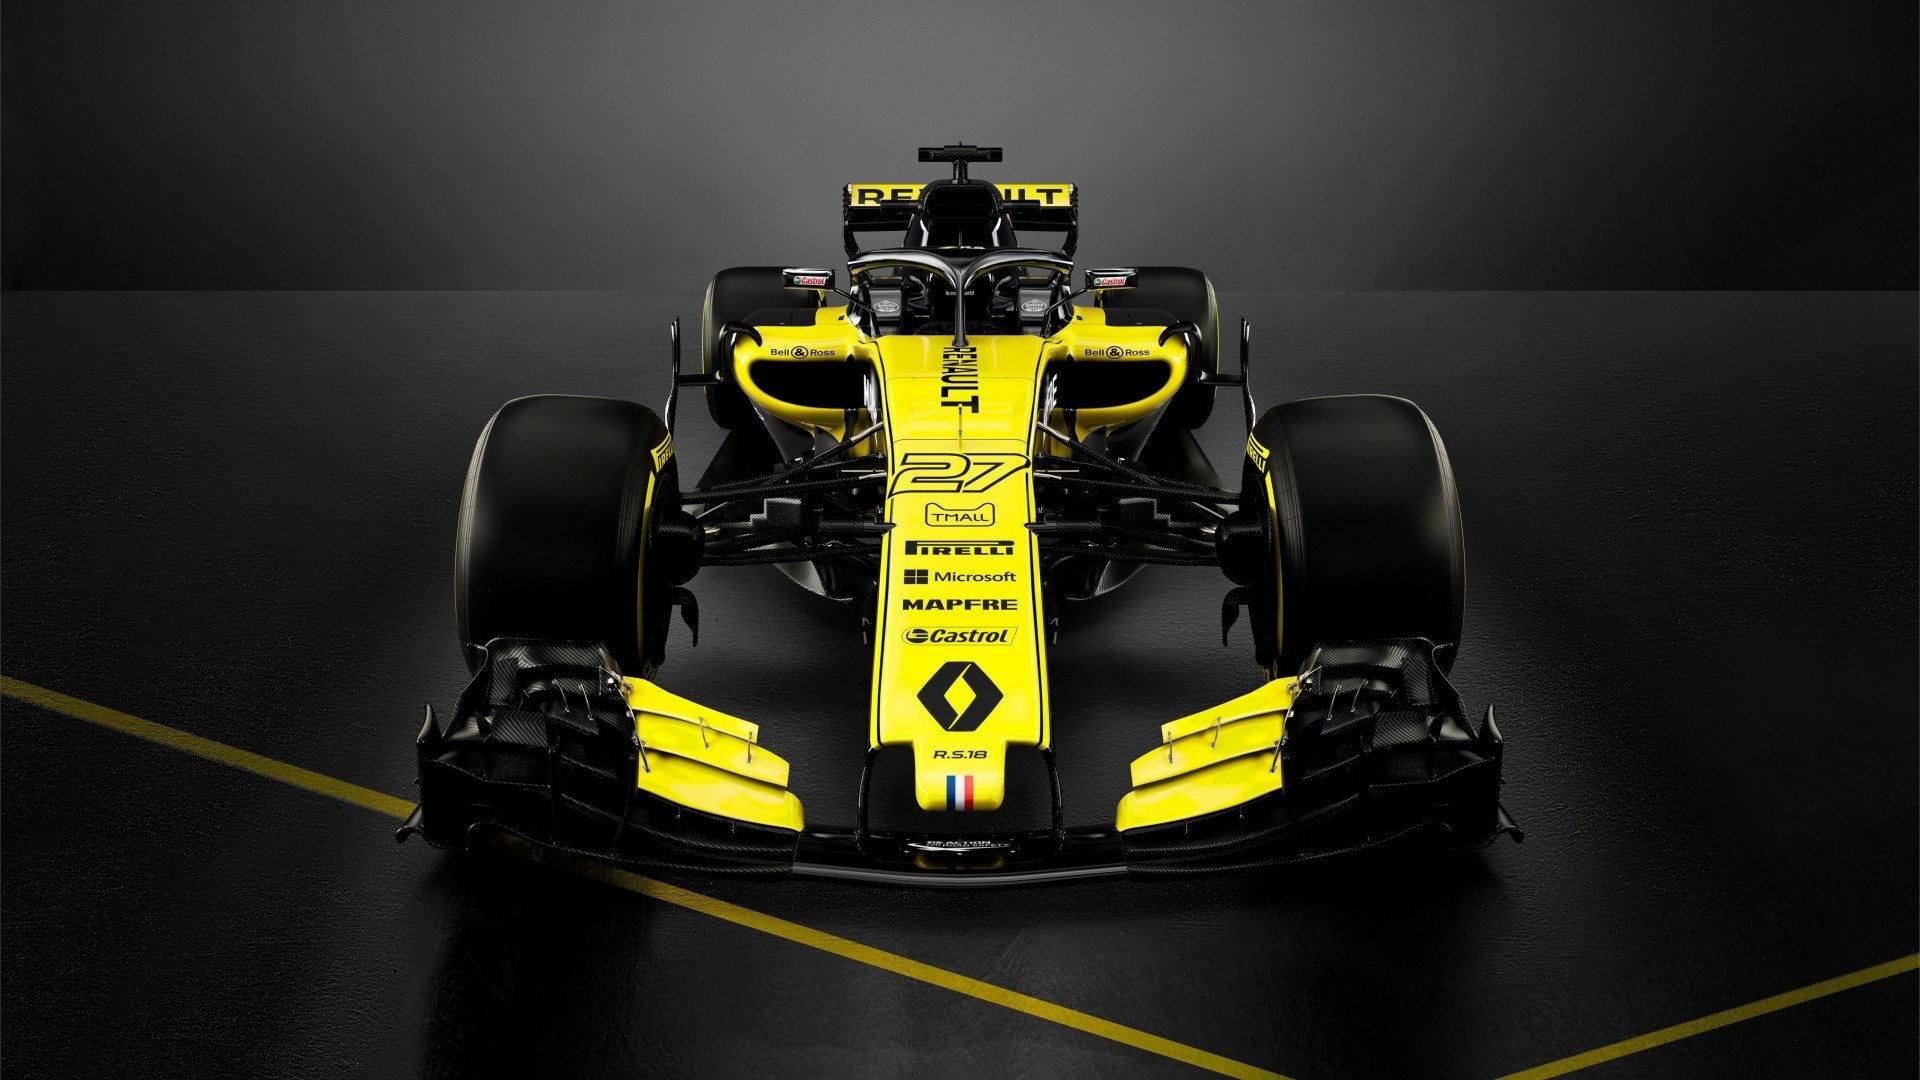 F1 Renault Hd Wallpaper Background Image 1920x1080 Id 928973 Wallpaper Abyss